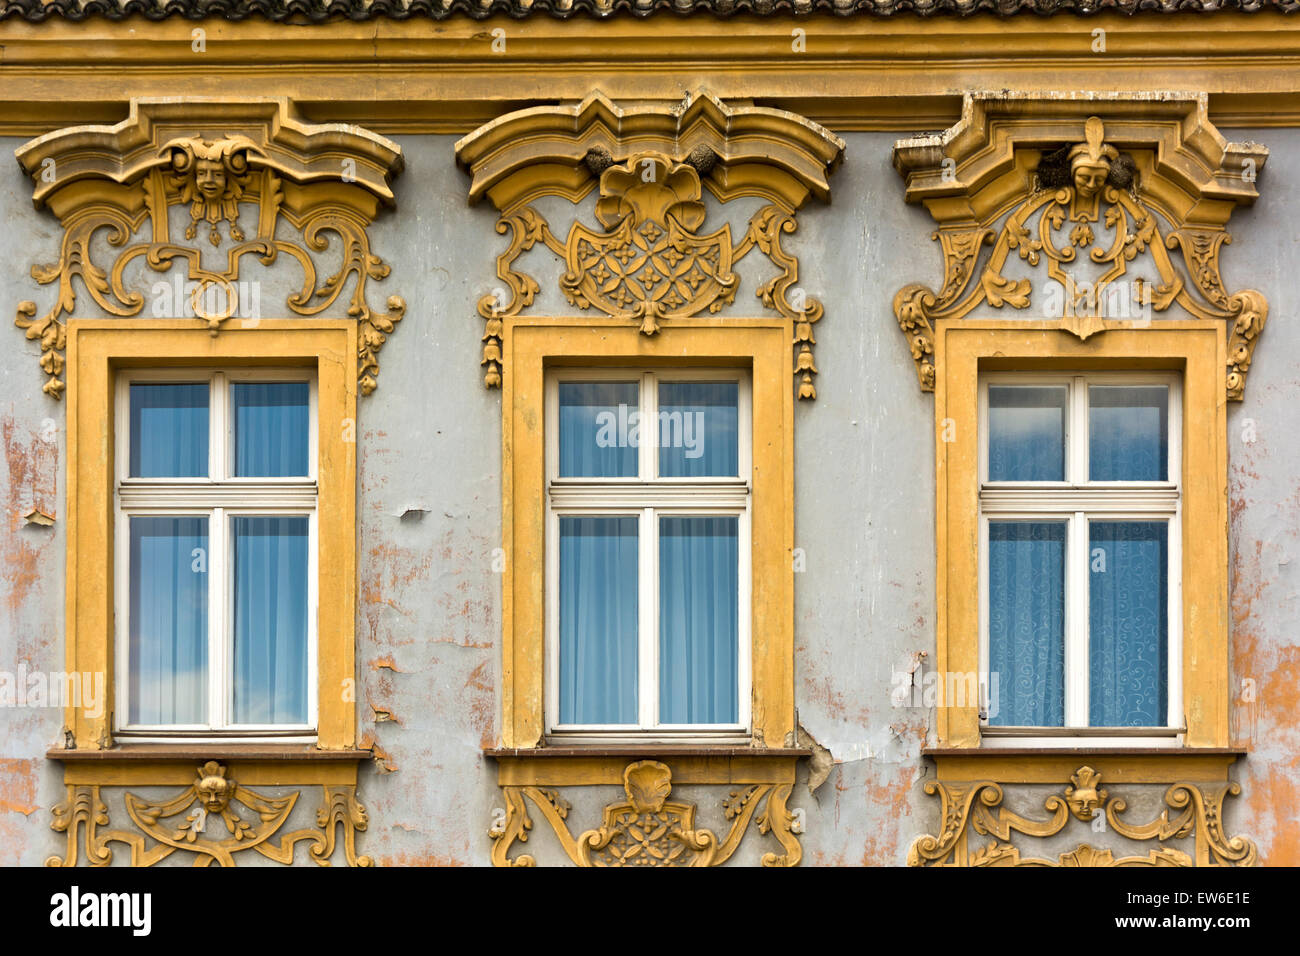 Baroque Architecture Style Stock Photos Amp Baroque